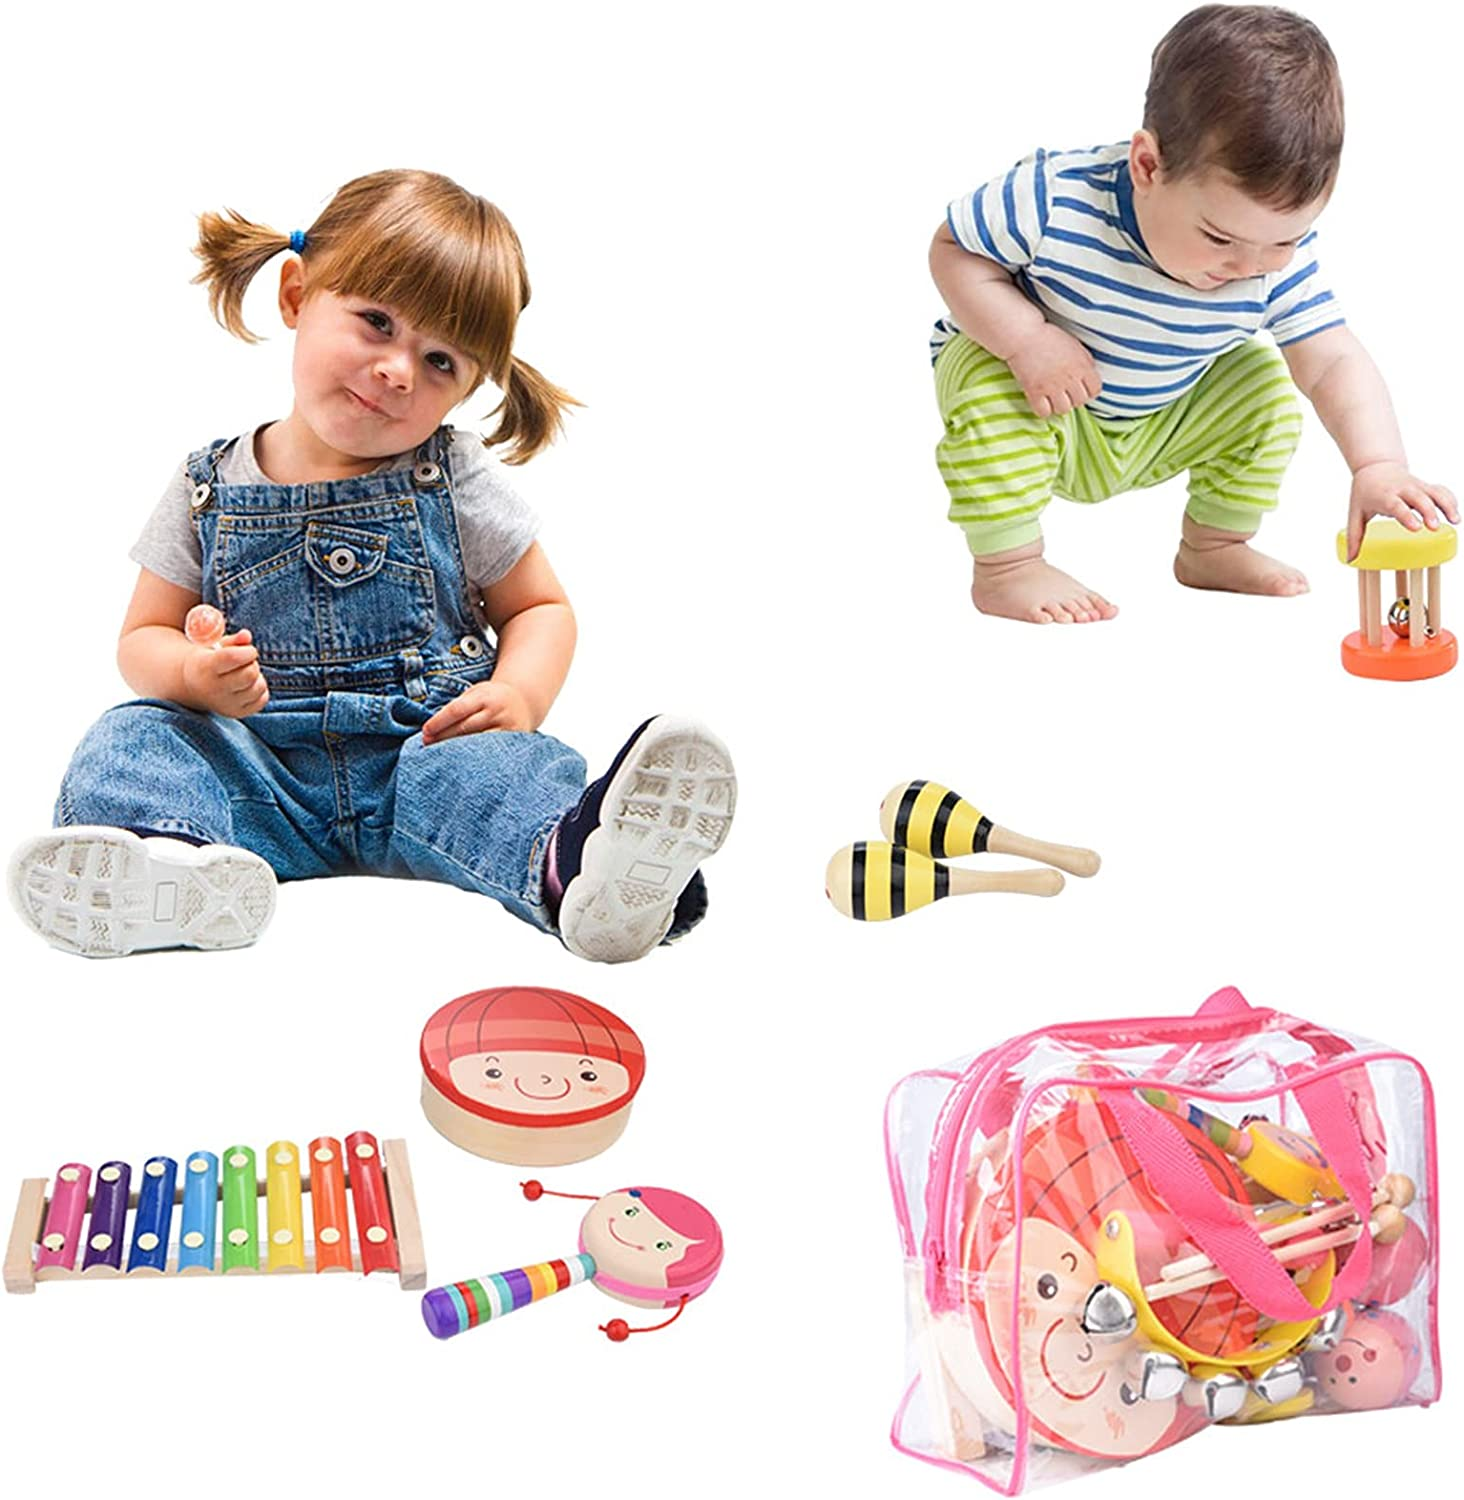 AMZFDC Kids Musical Instruments 12 Percussion Types A surprise OFFicial price is realized Pcs Wooden